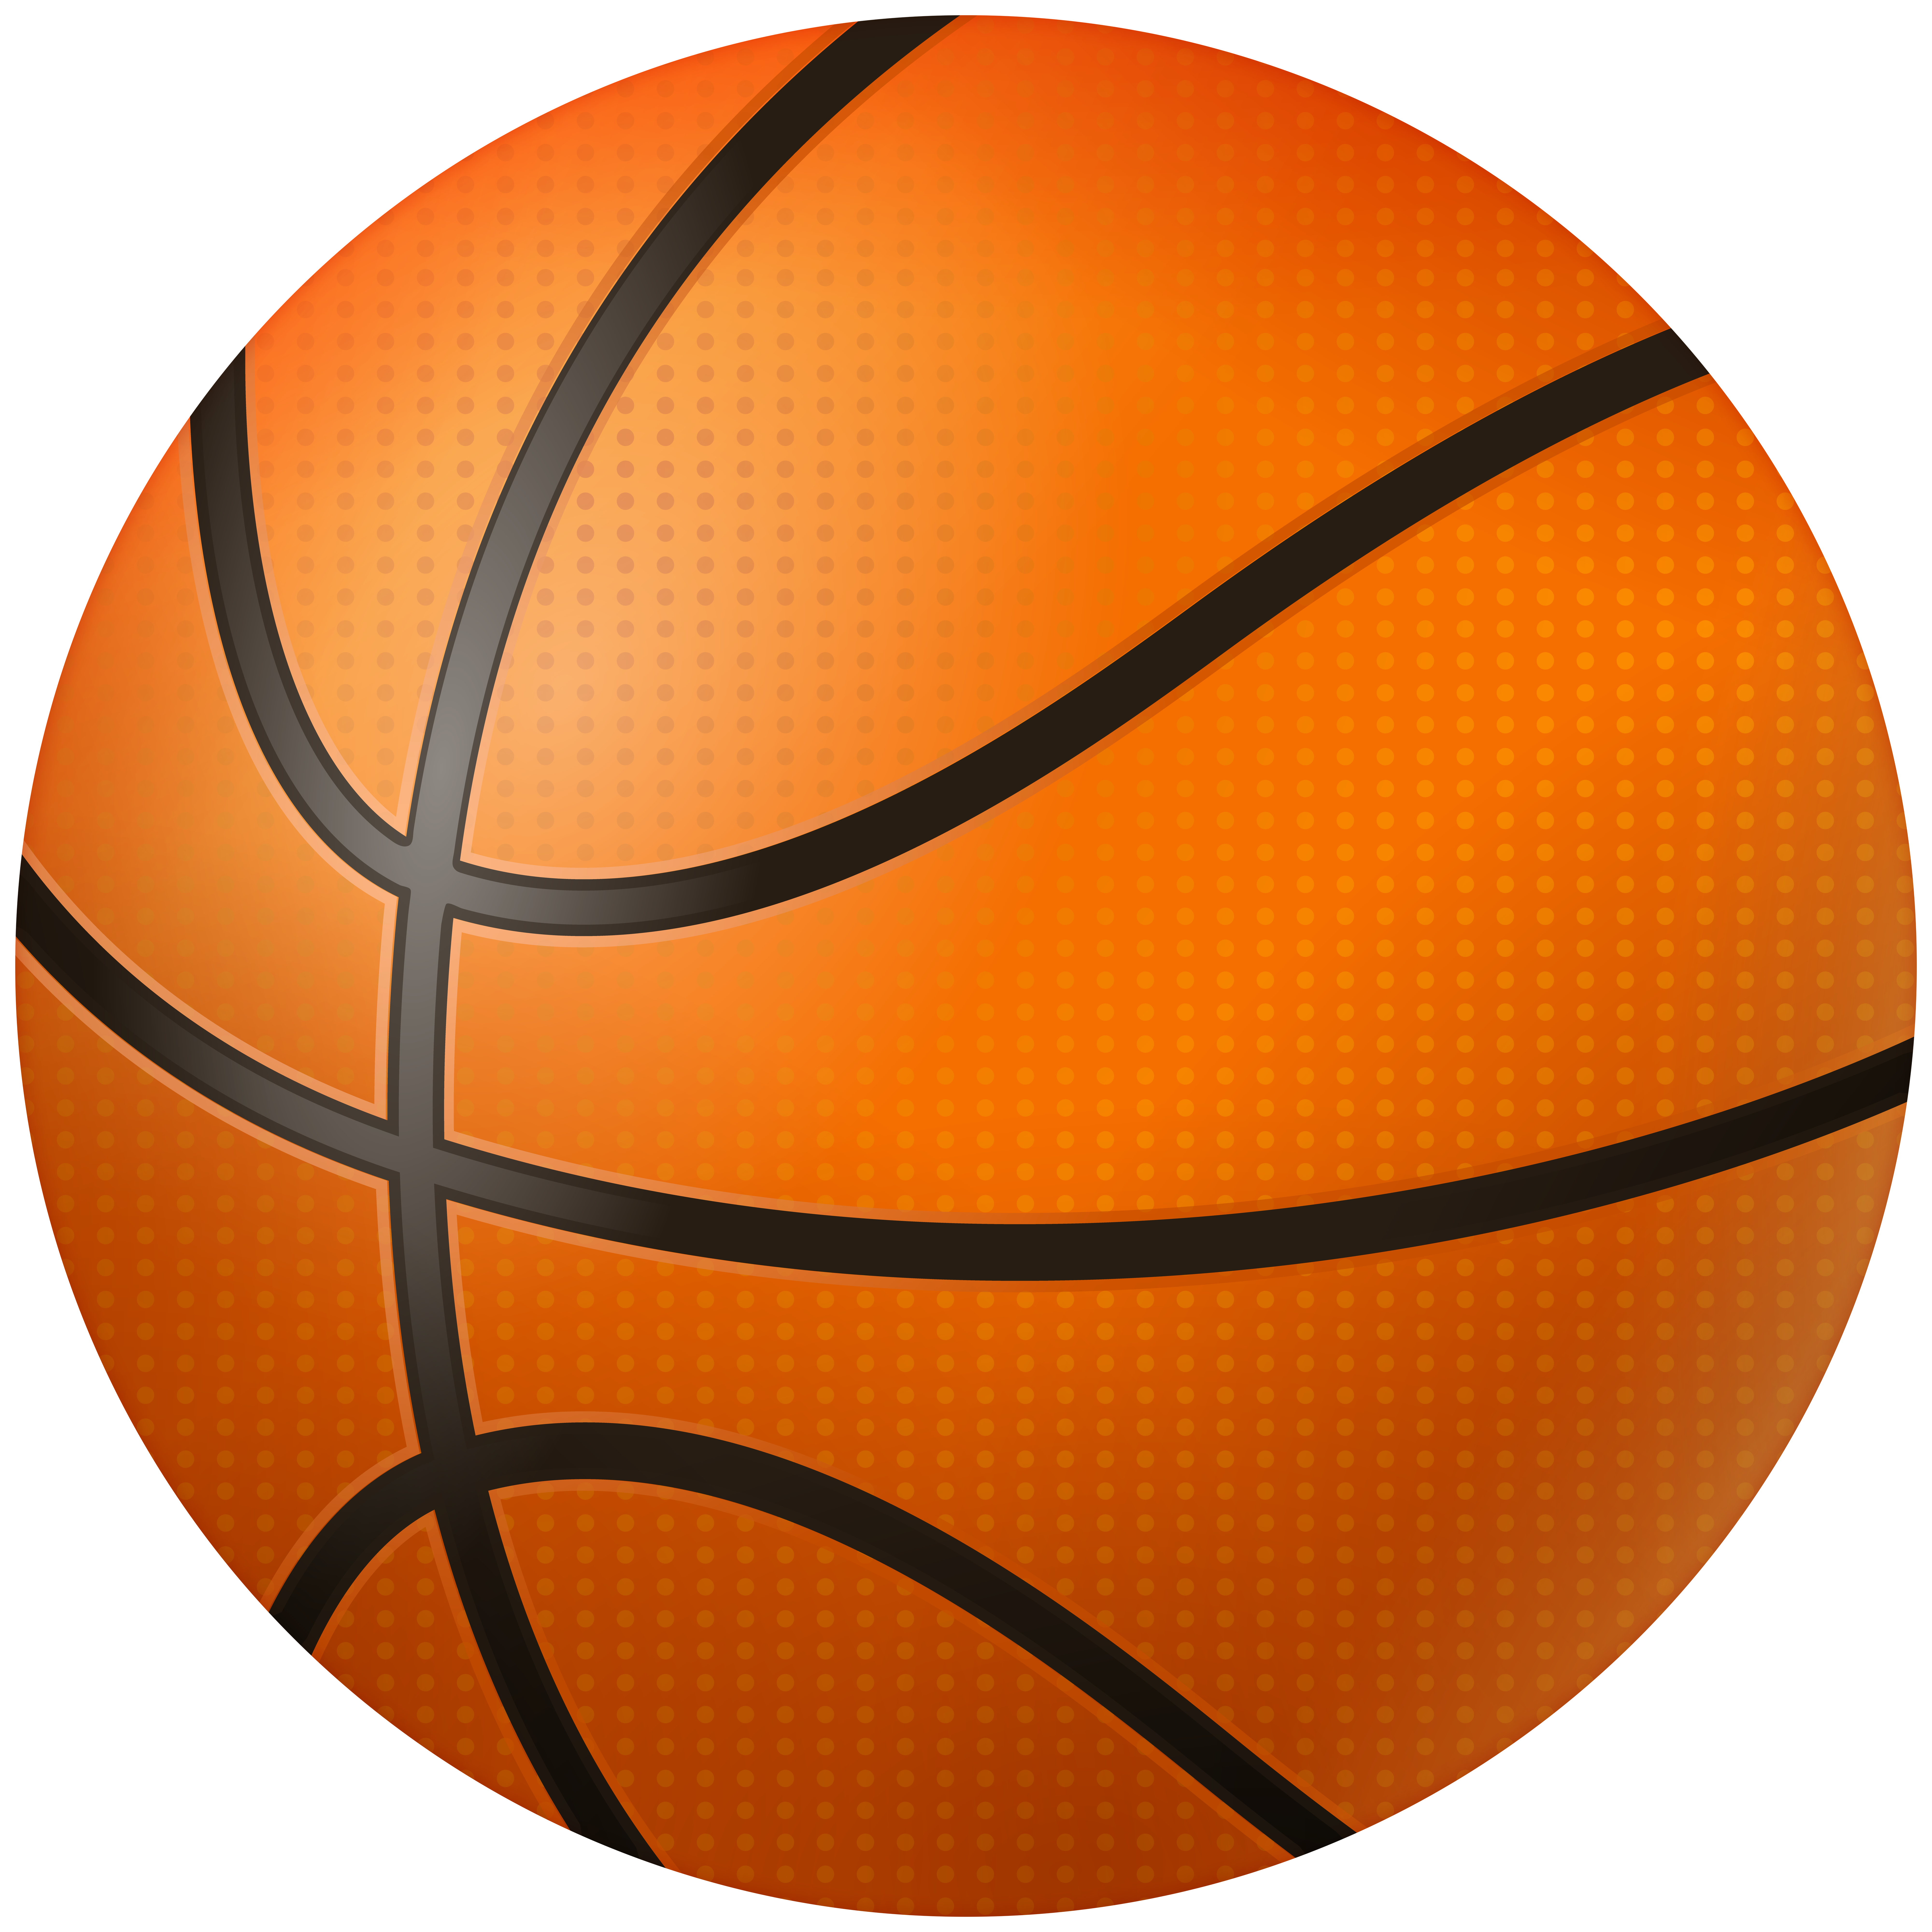 Ball clipart. Basketball image gallery yopriceville